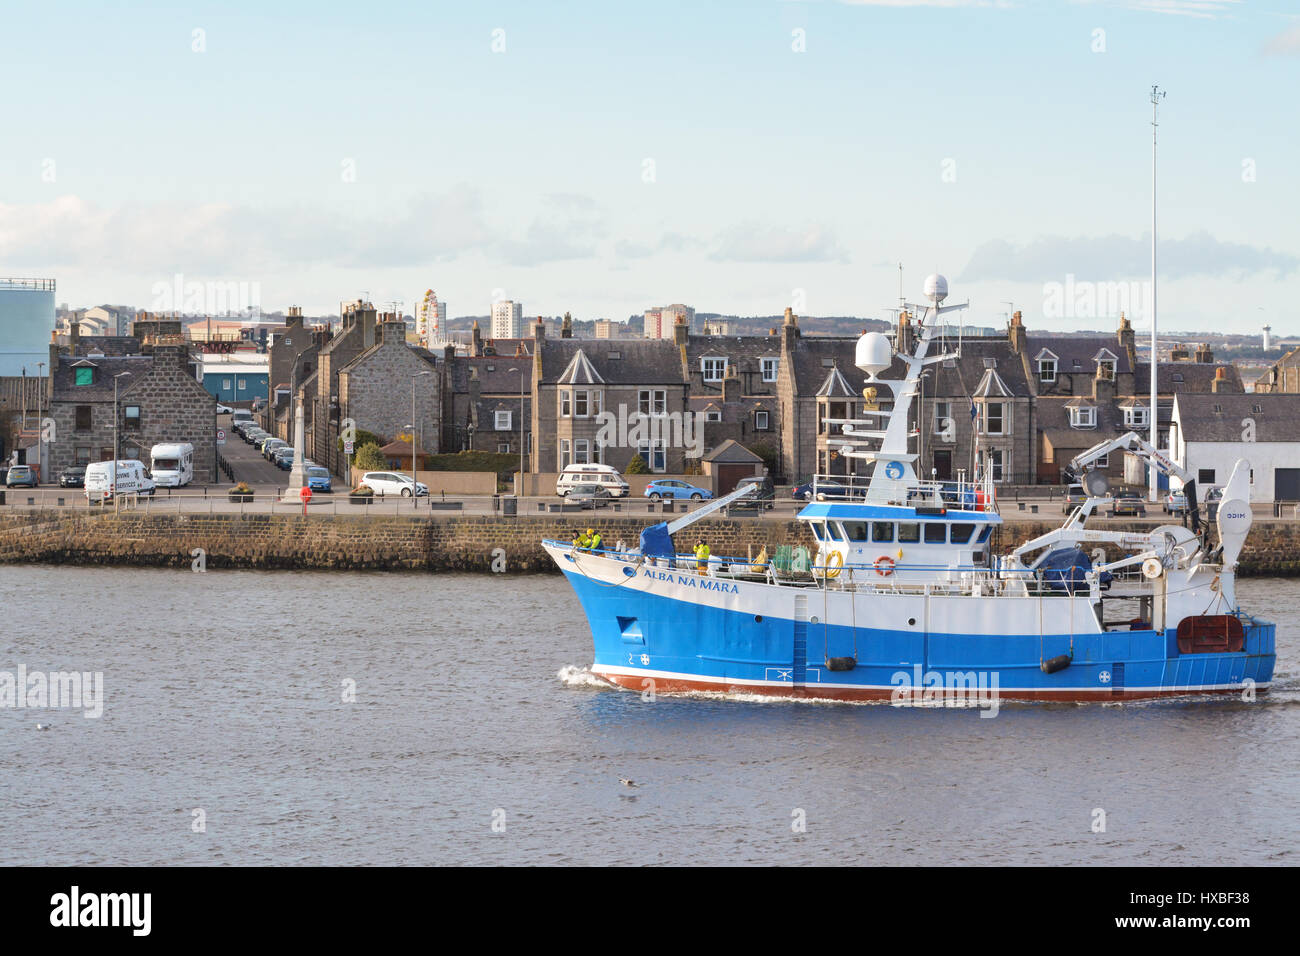 Marine Scotland Fisheries Research Vessel entering Aberdeen Harbour, Scotland, UK - Stock Image